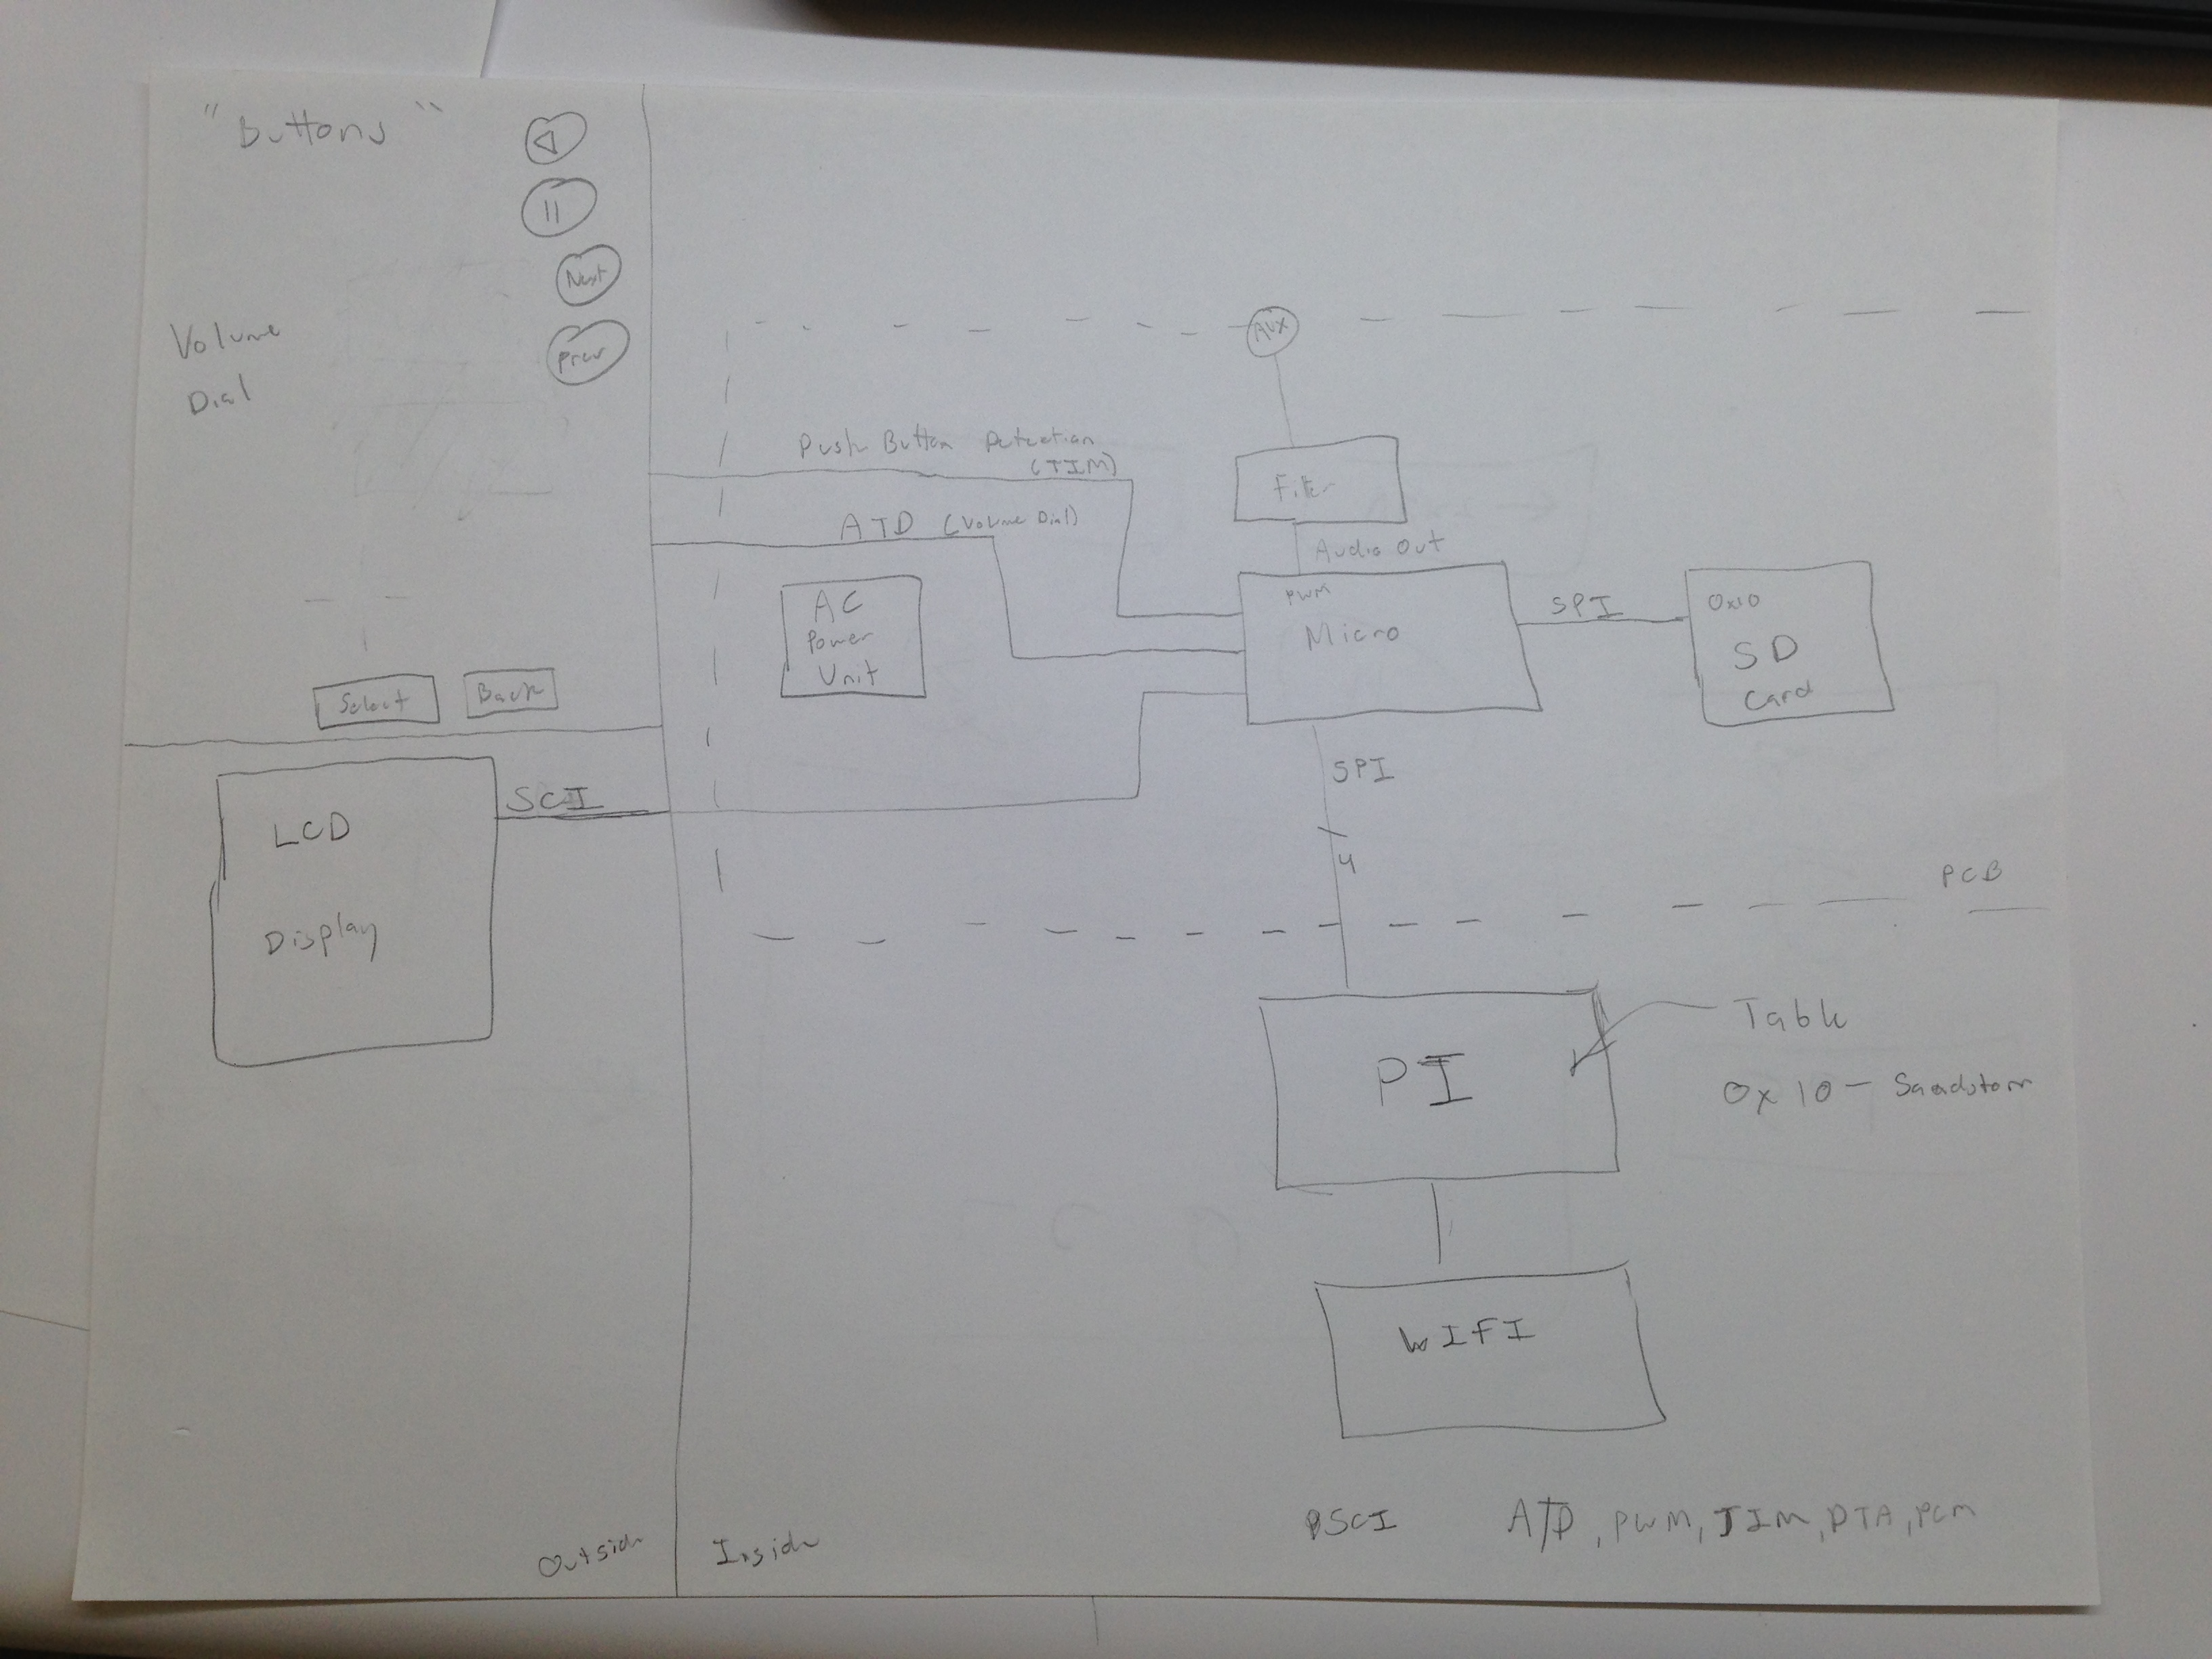 Ece477 Course Documents Below Is A Schematicdiagram Of Usb Player Images Click To See Enlarged Version